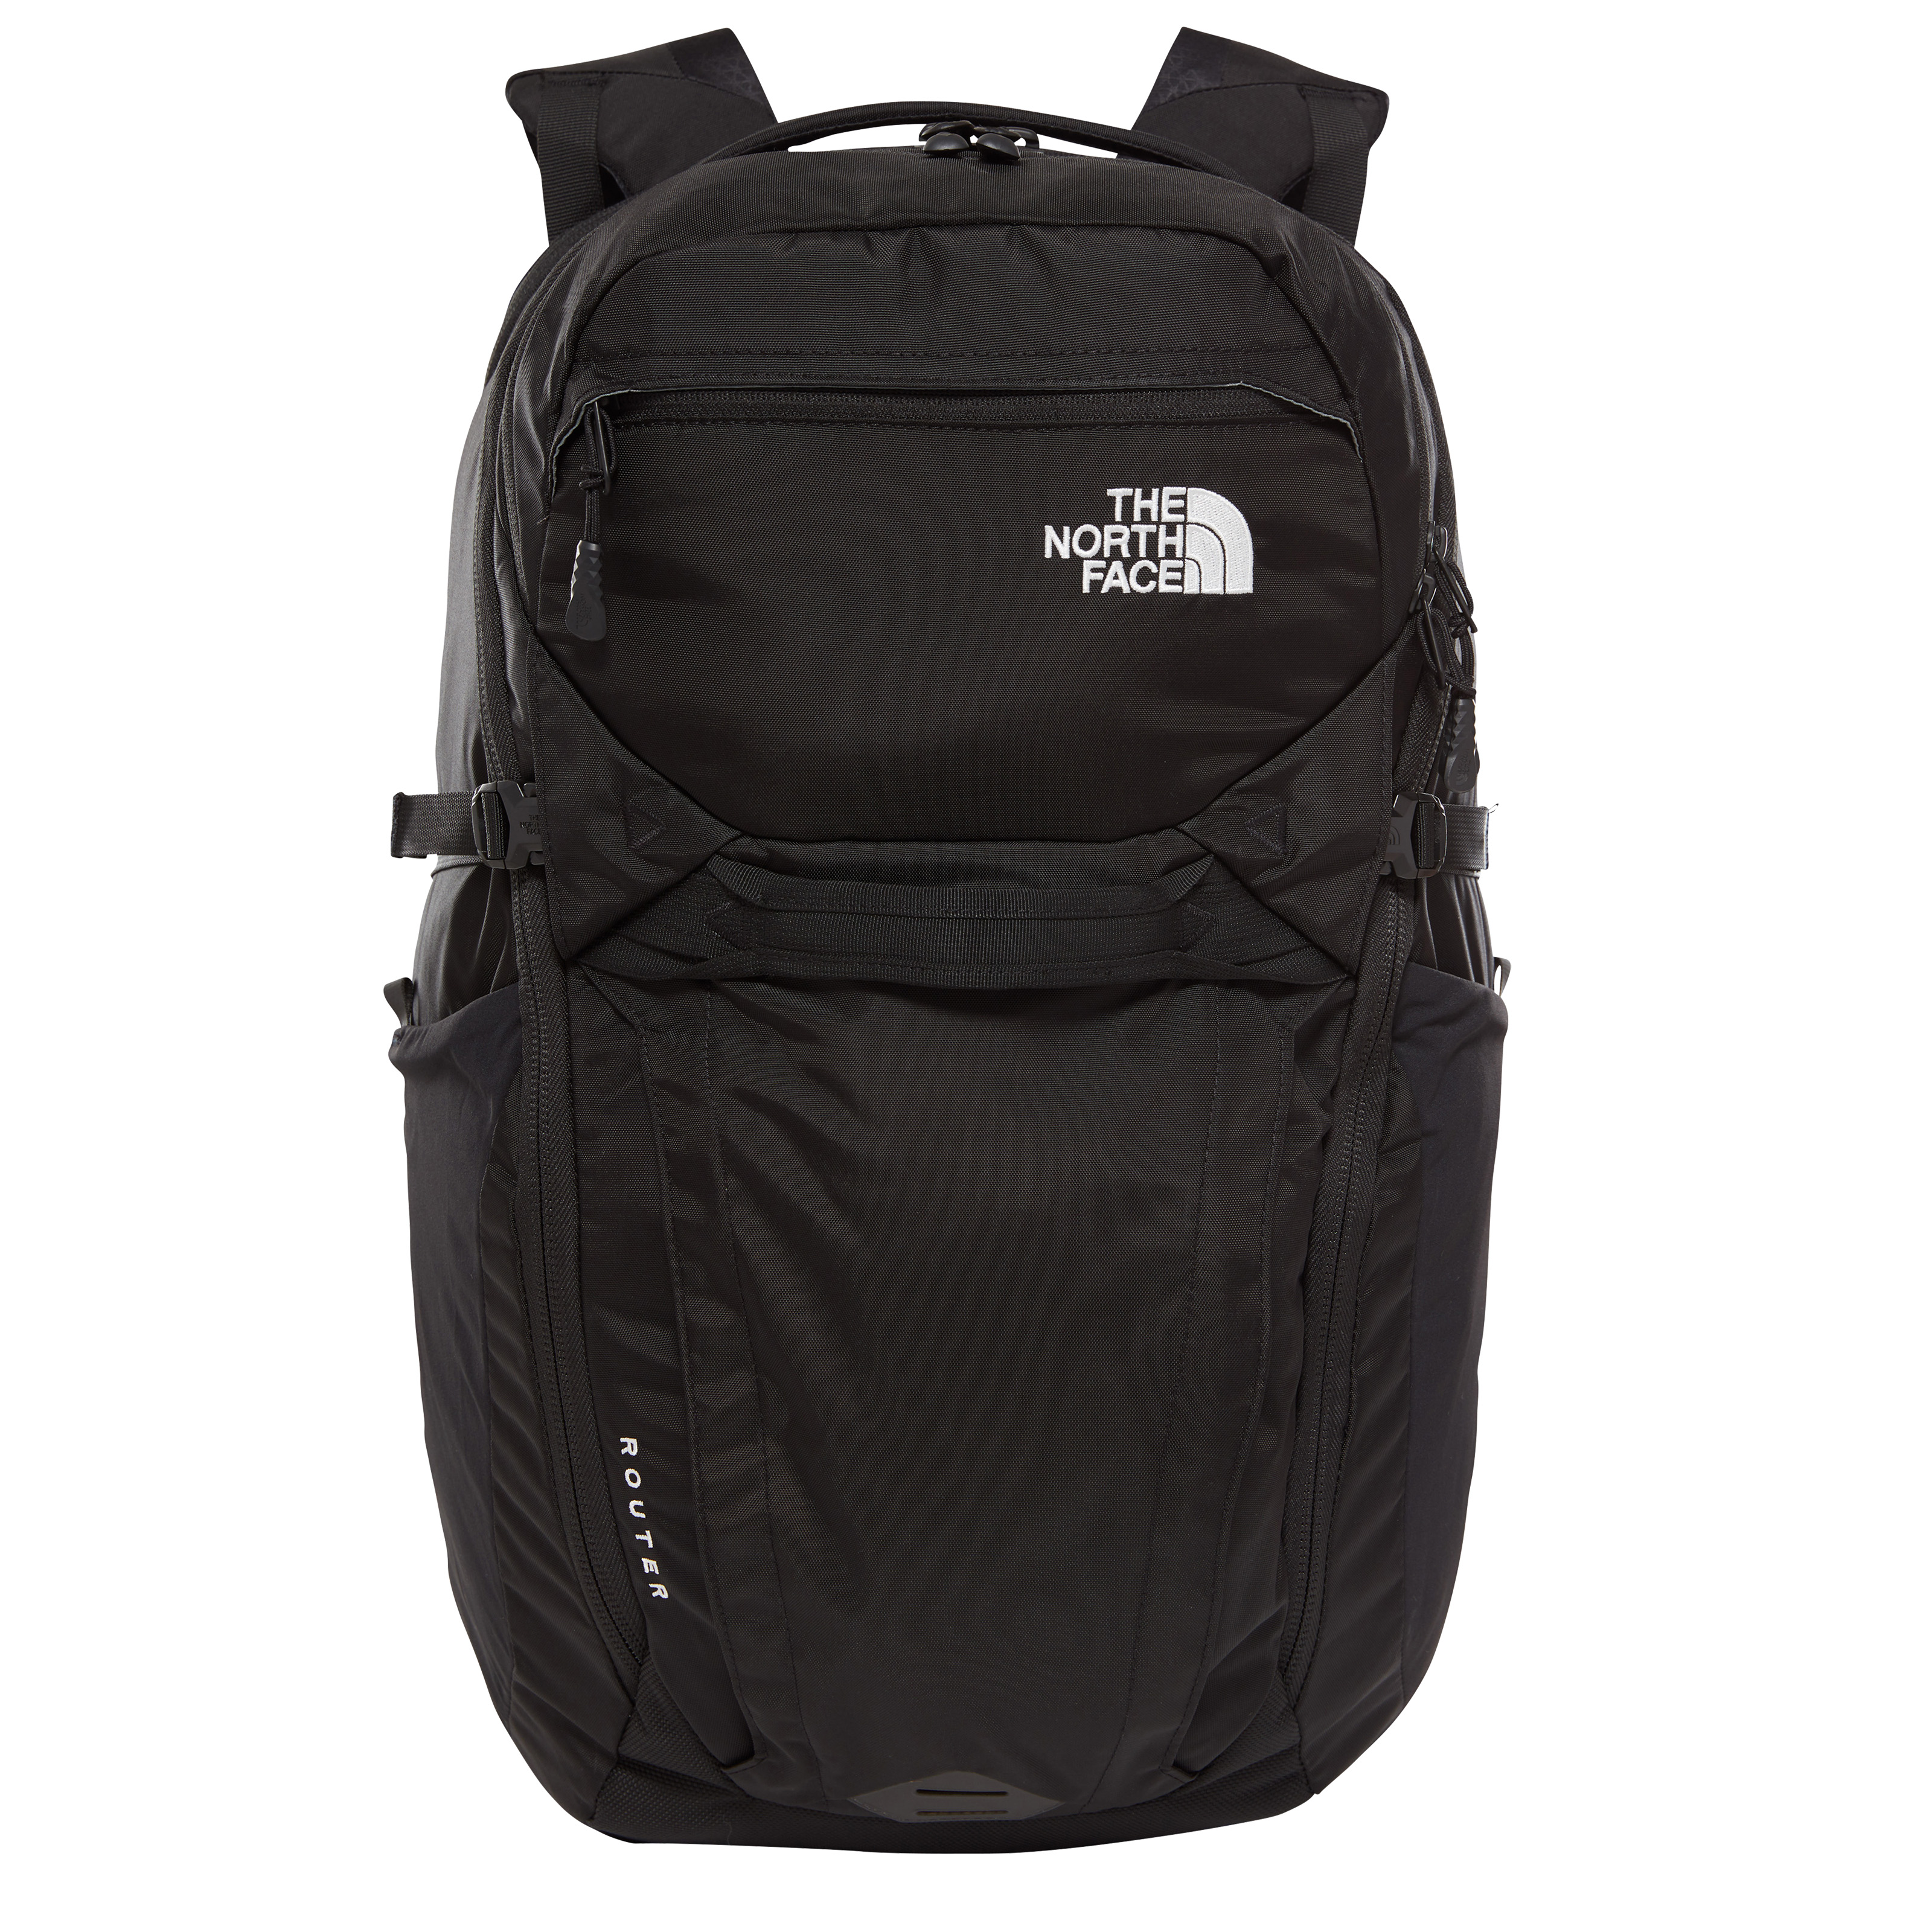 The North Face ROUTER